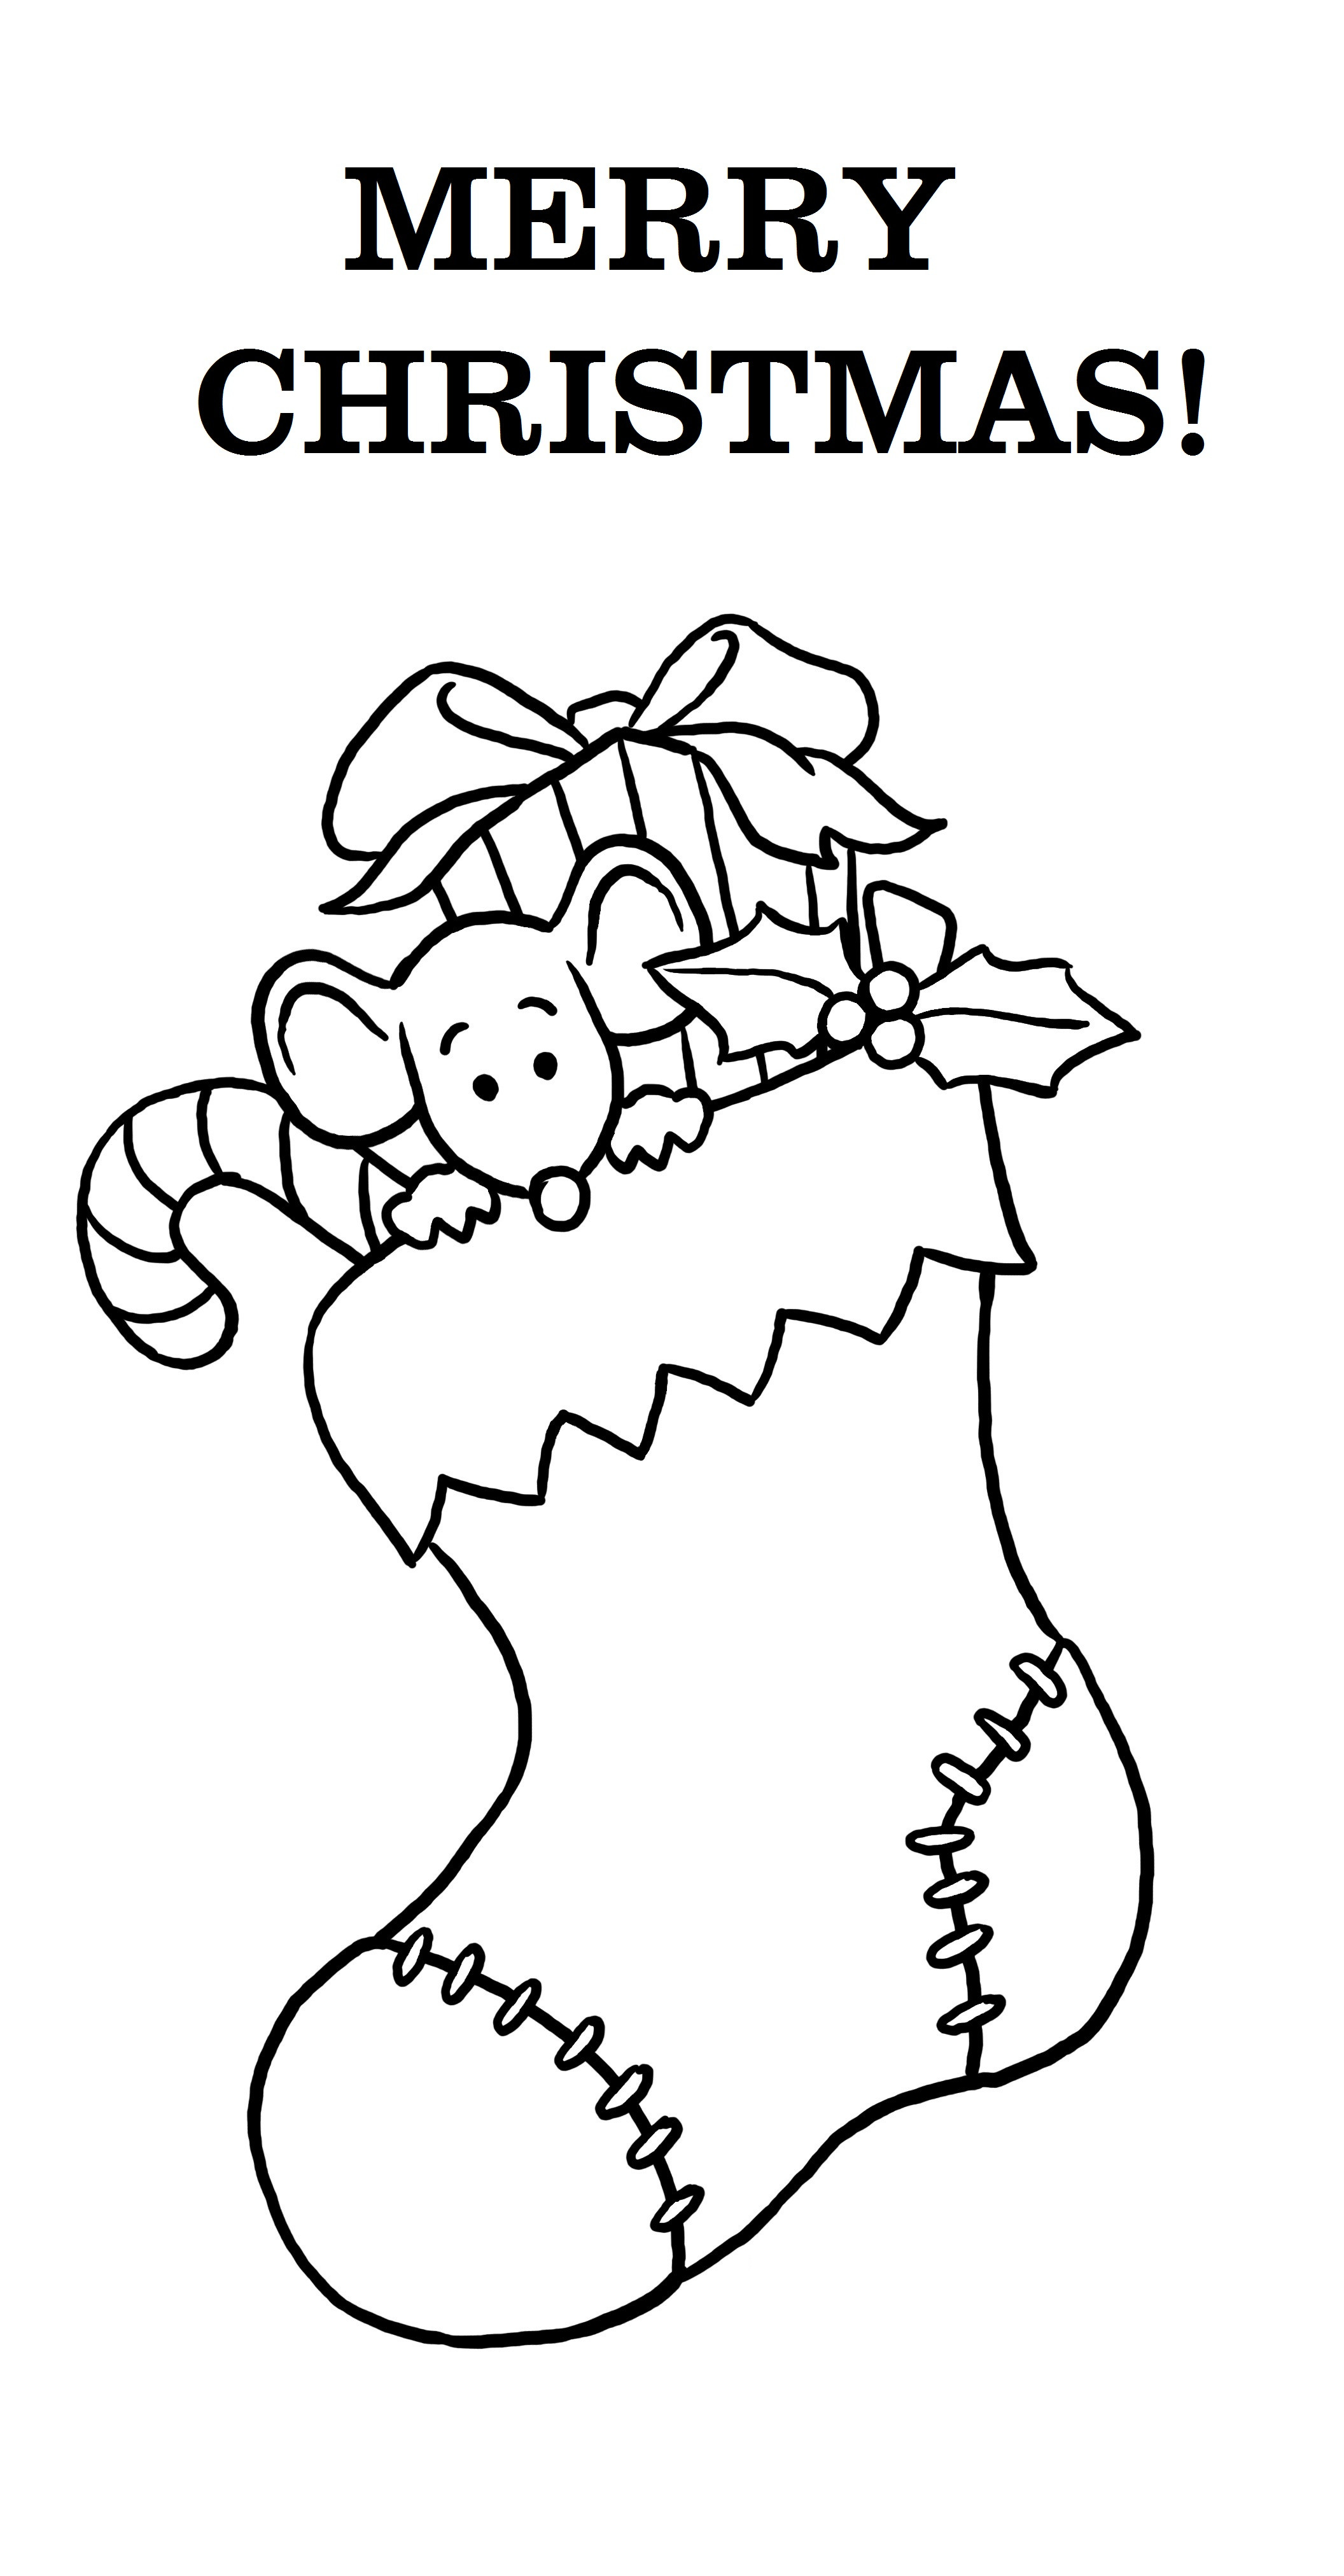 Christmas Coloring Sheets For Kids Free  Free Printable Merry Christmas Coloring Pages